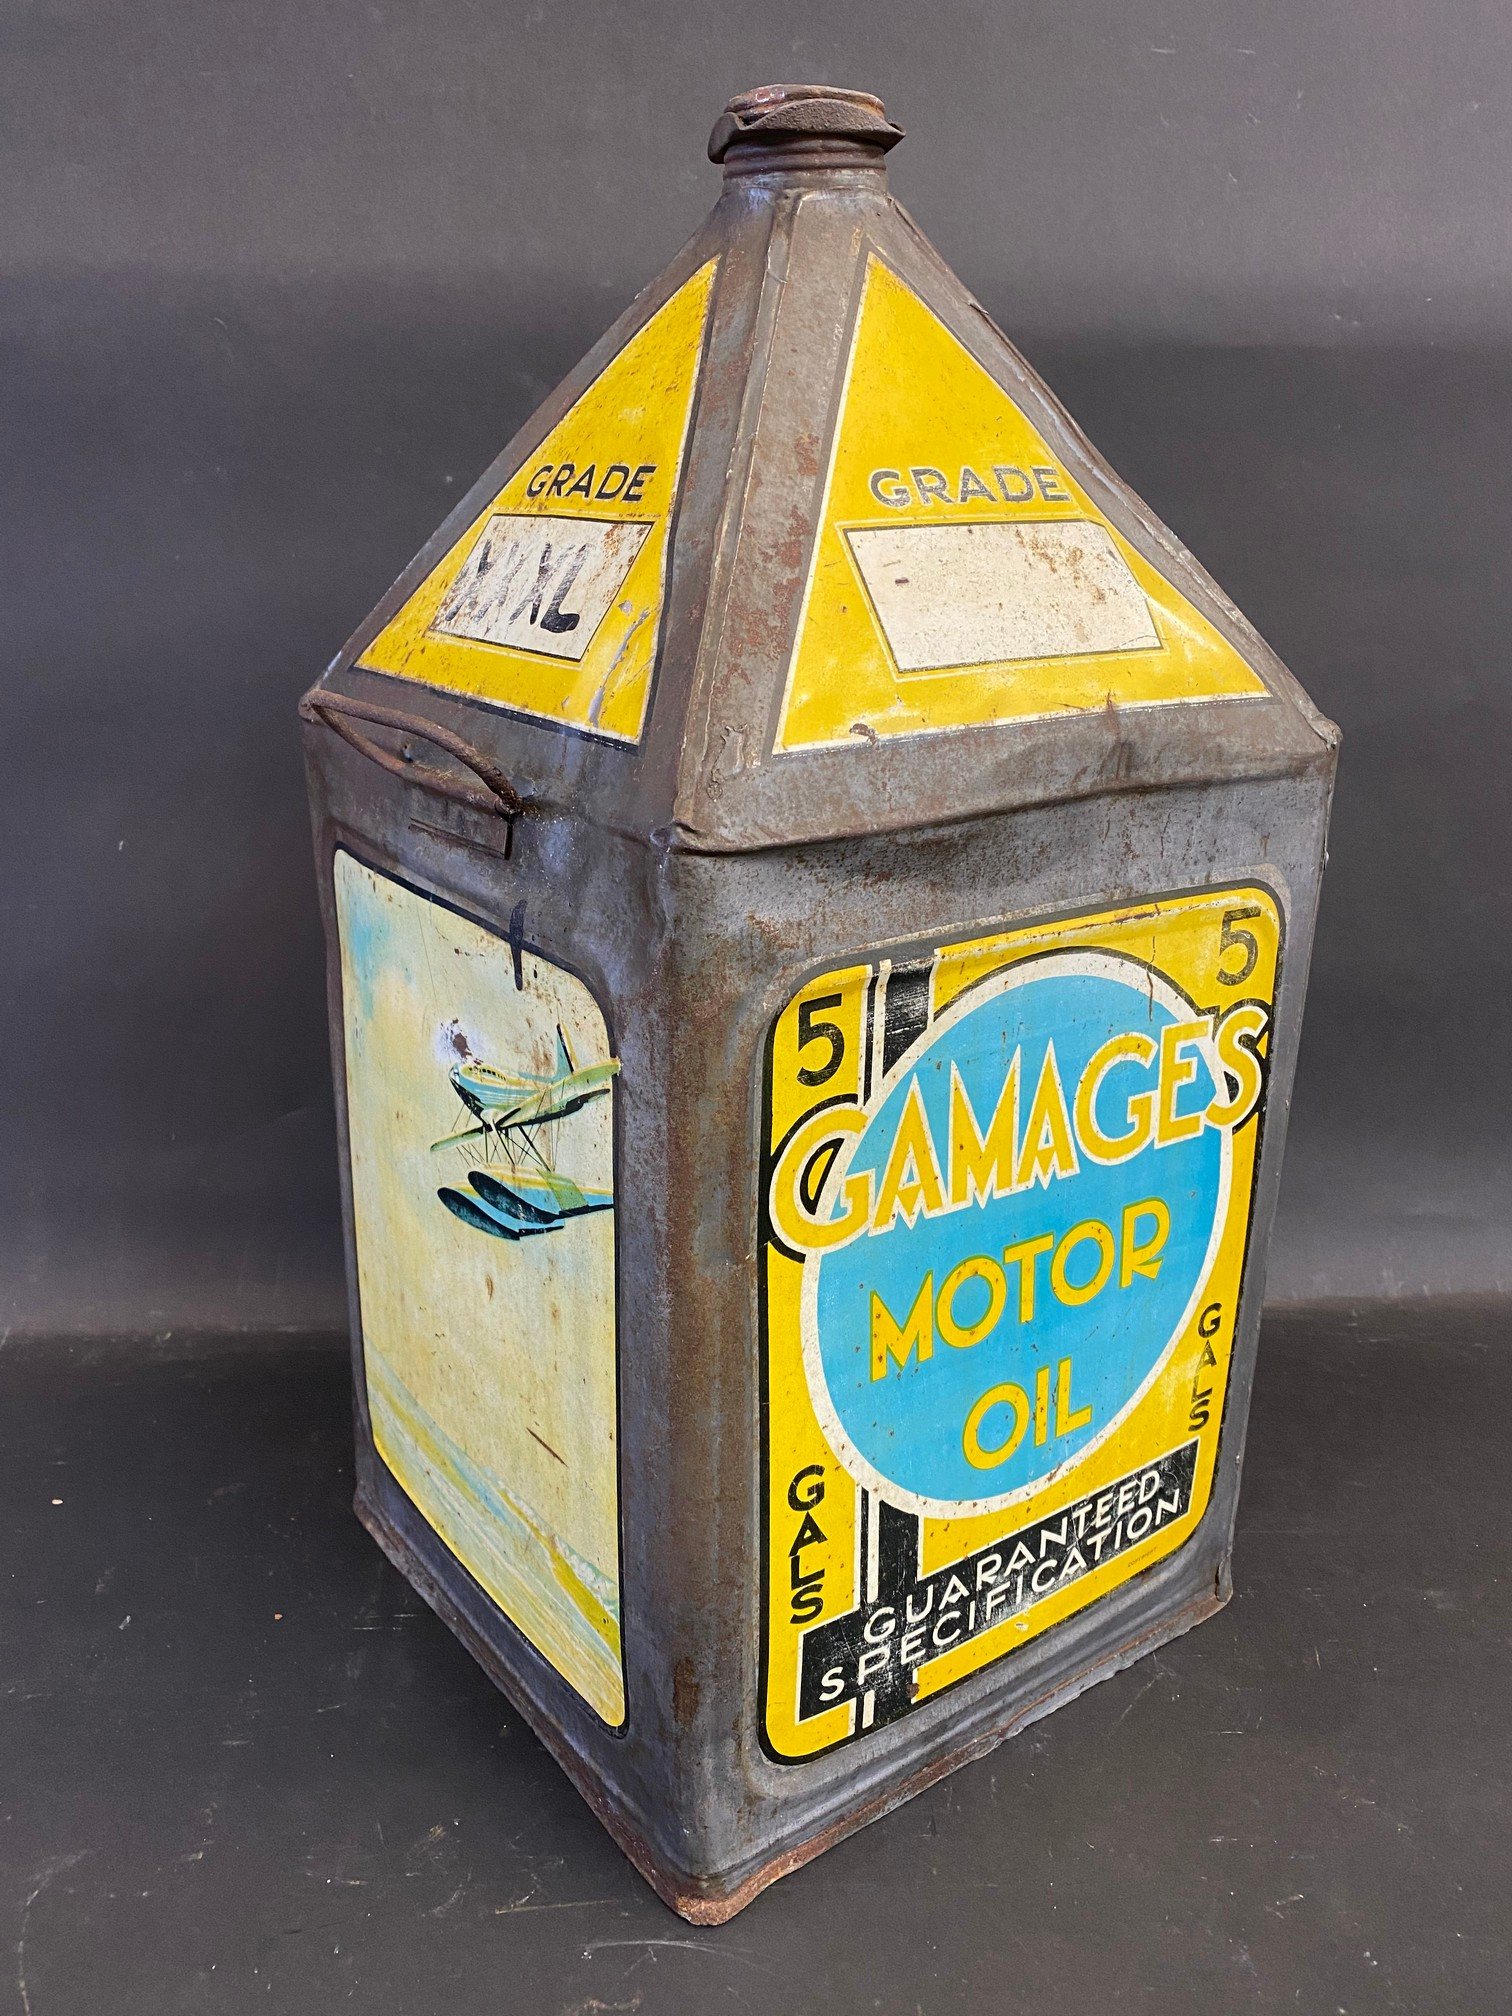 A Gamages Motor Oil five gallon pyramid can of good colour.